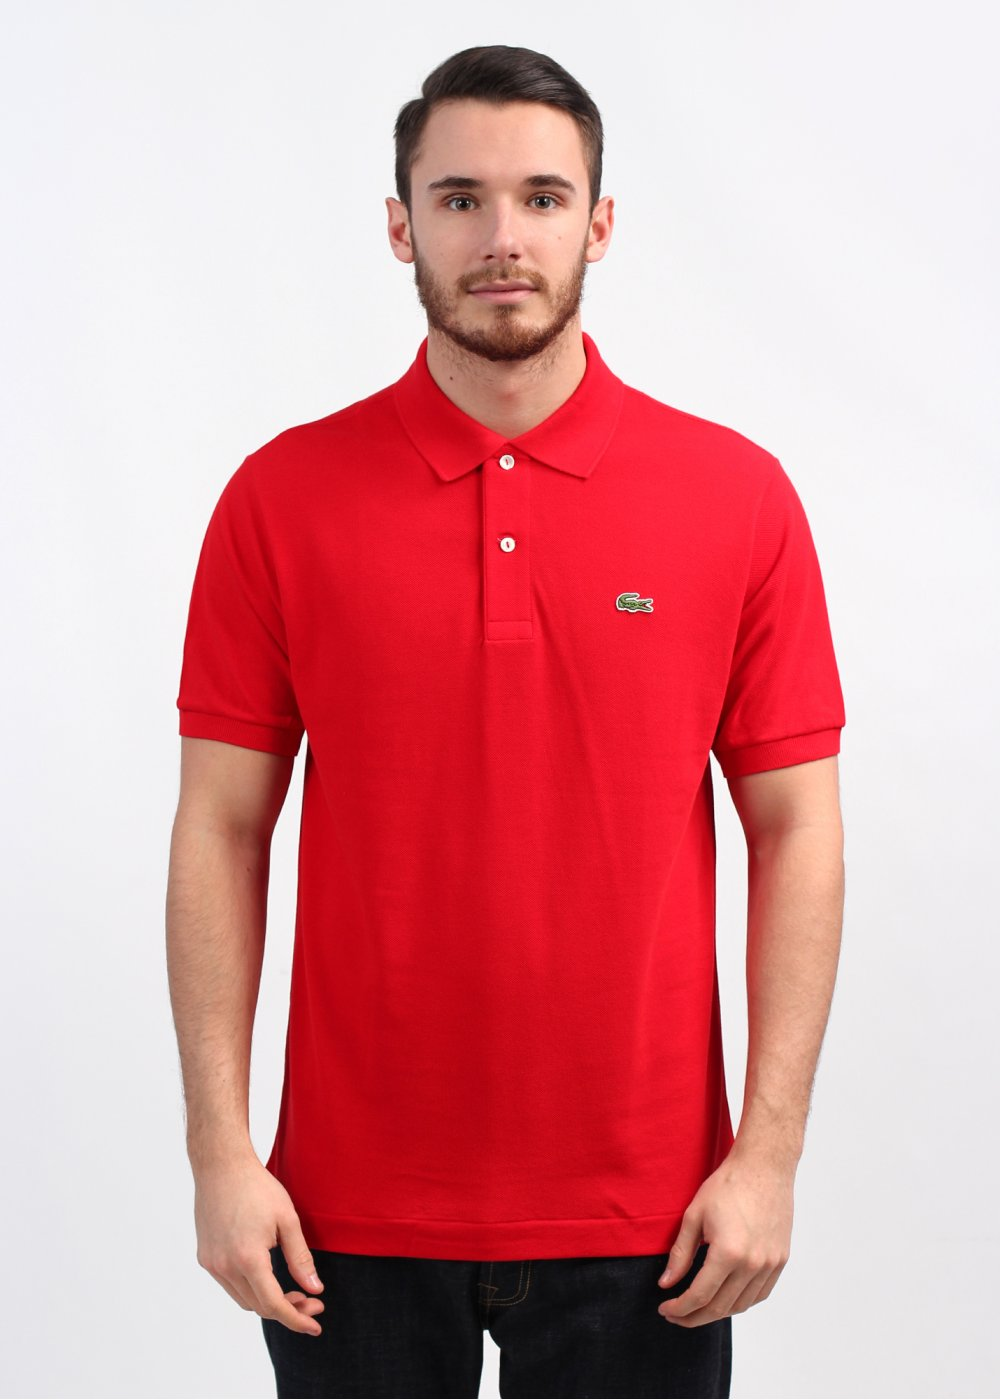 Lacoste best polo shirt bright red for Best polo shirt for men